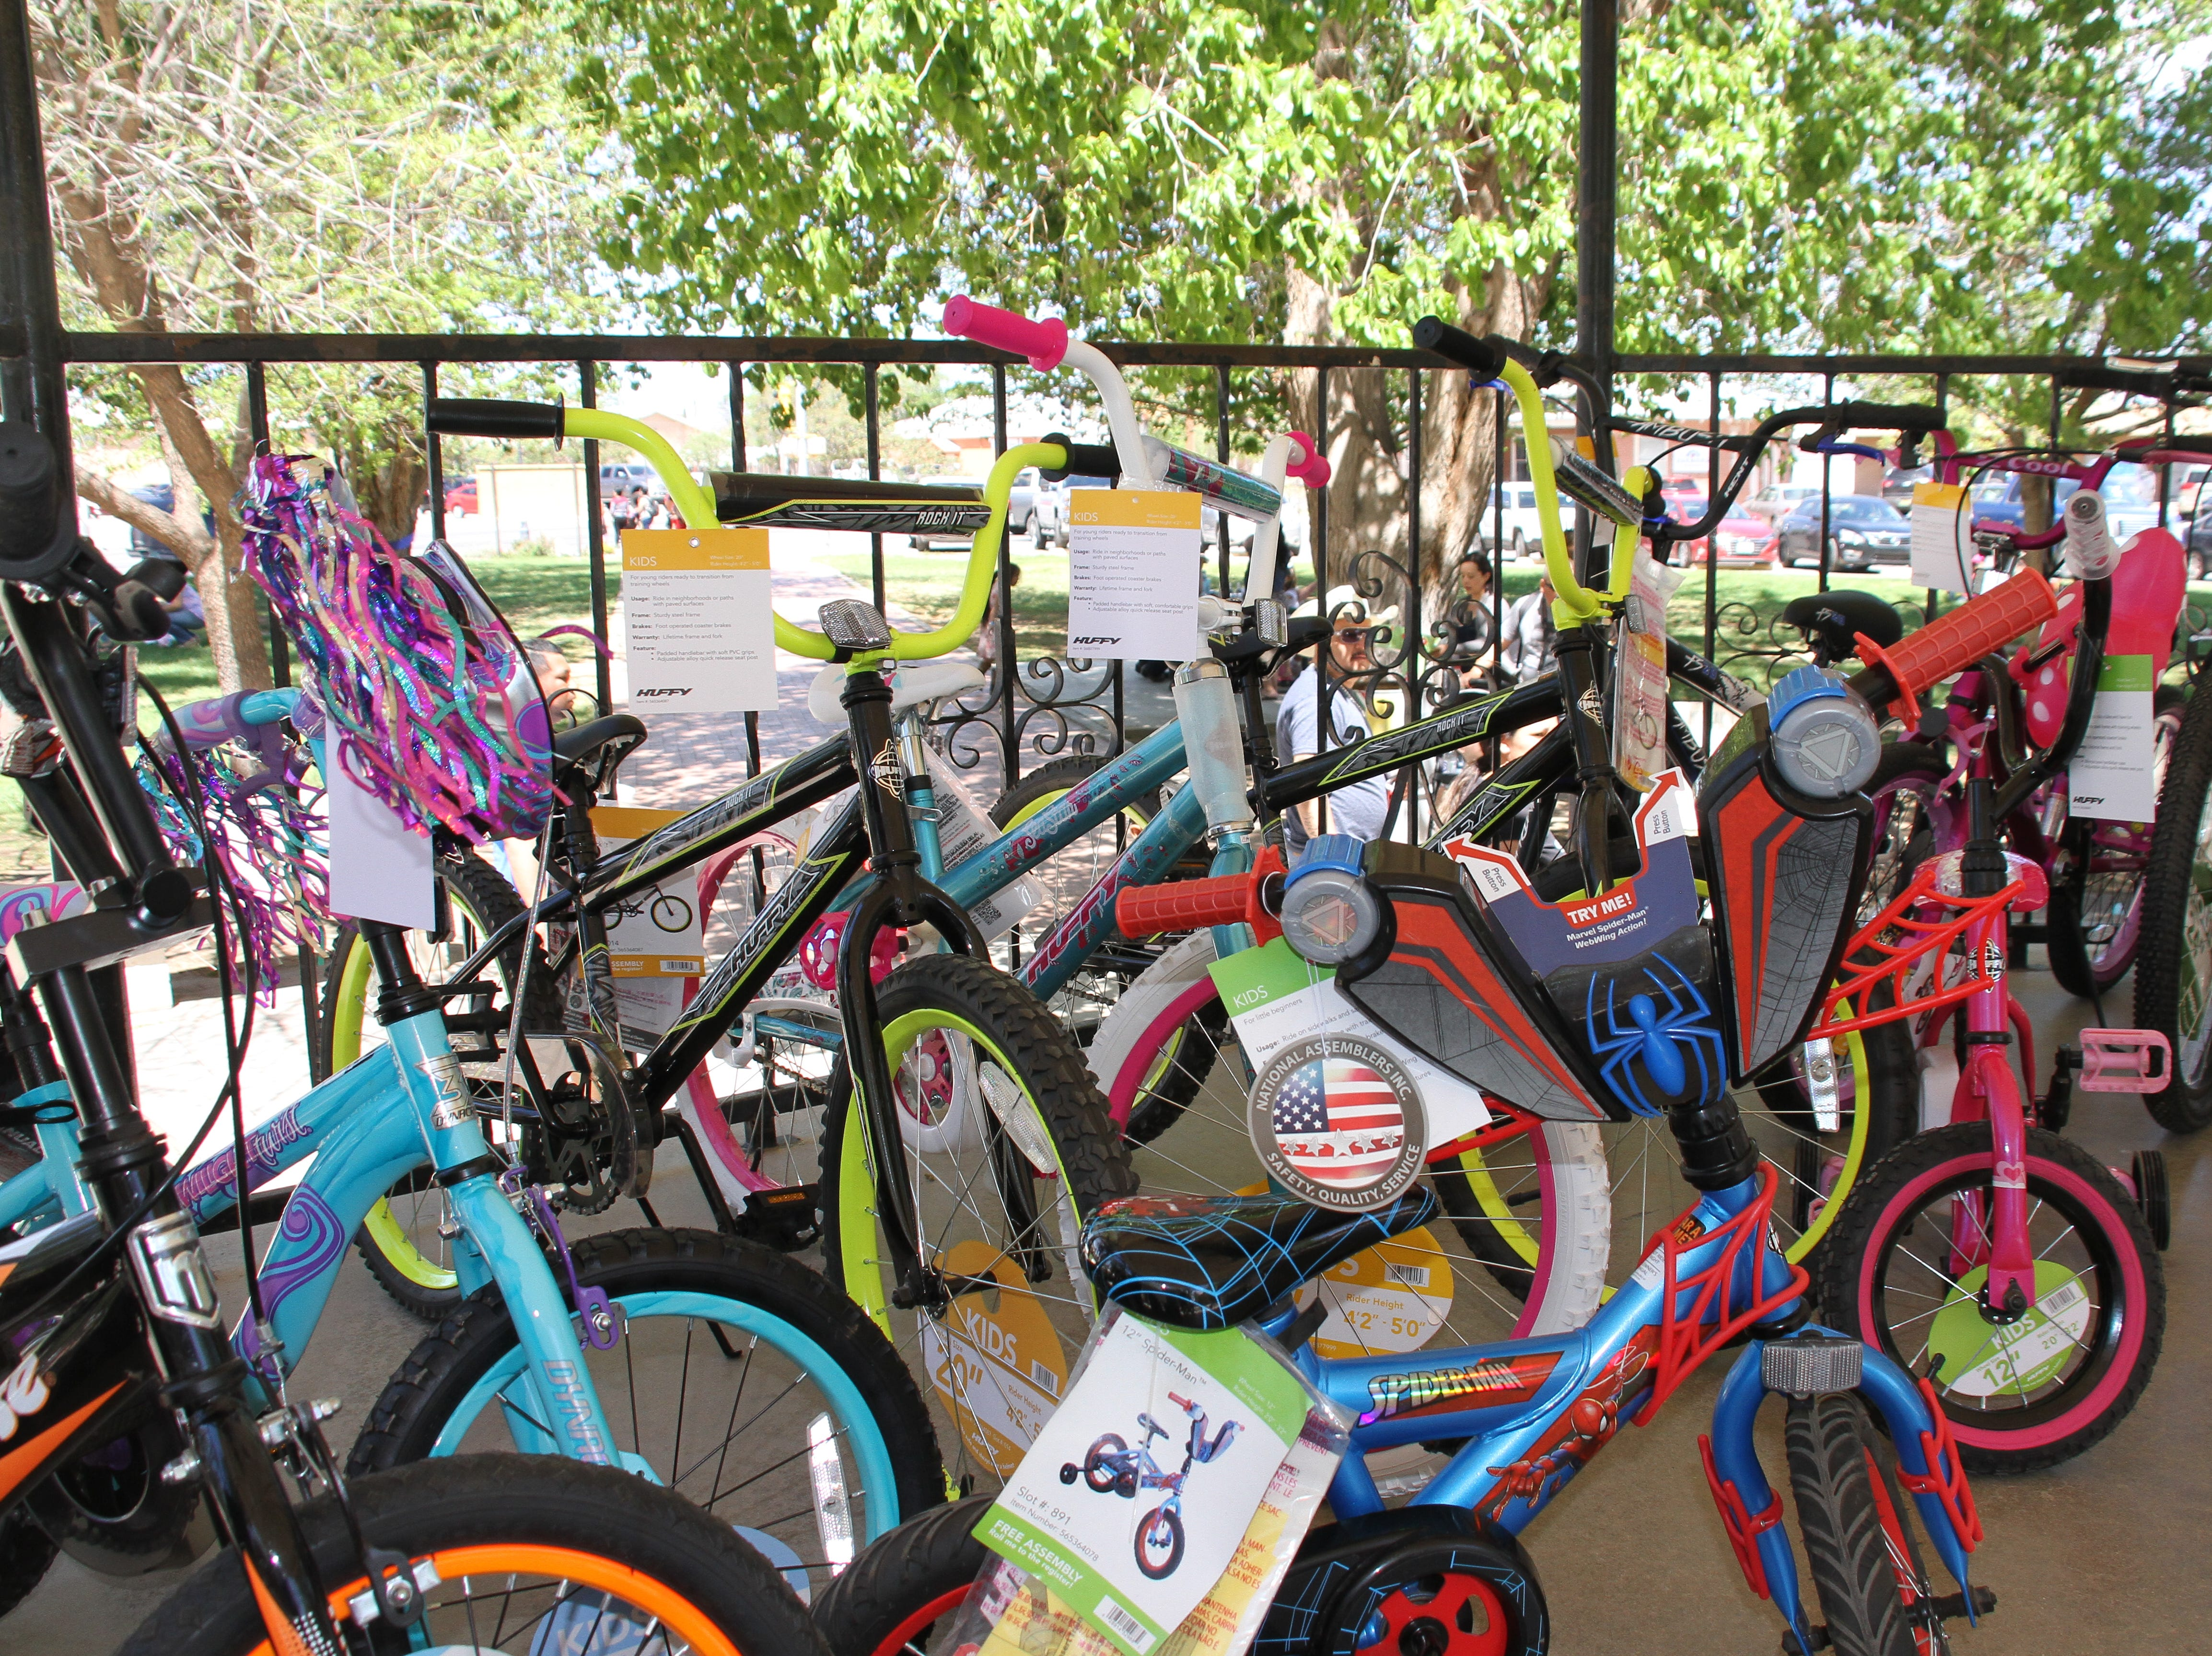 If a child picked an egg that contained a red ticket, their name would have been automatically submitted to a drawing - with the chance to win a bike or other prizes.